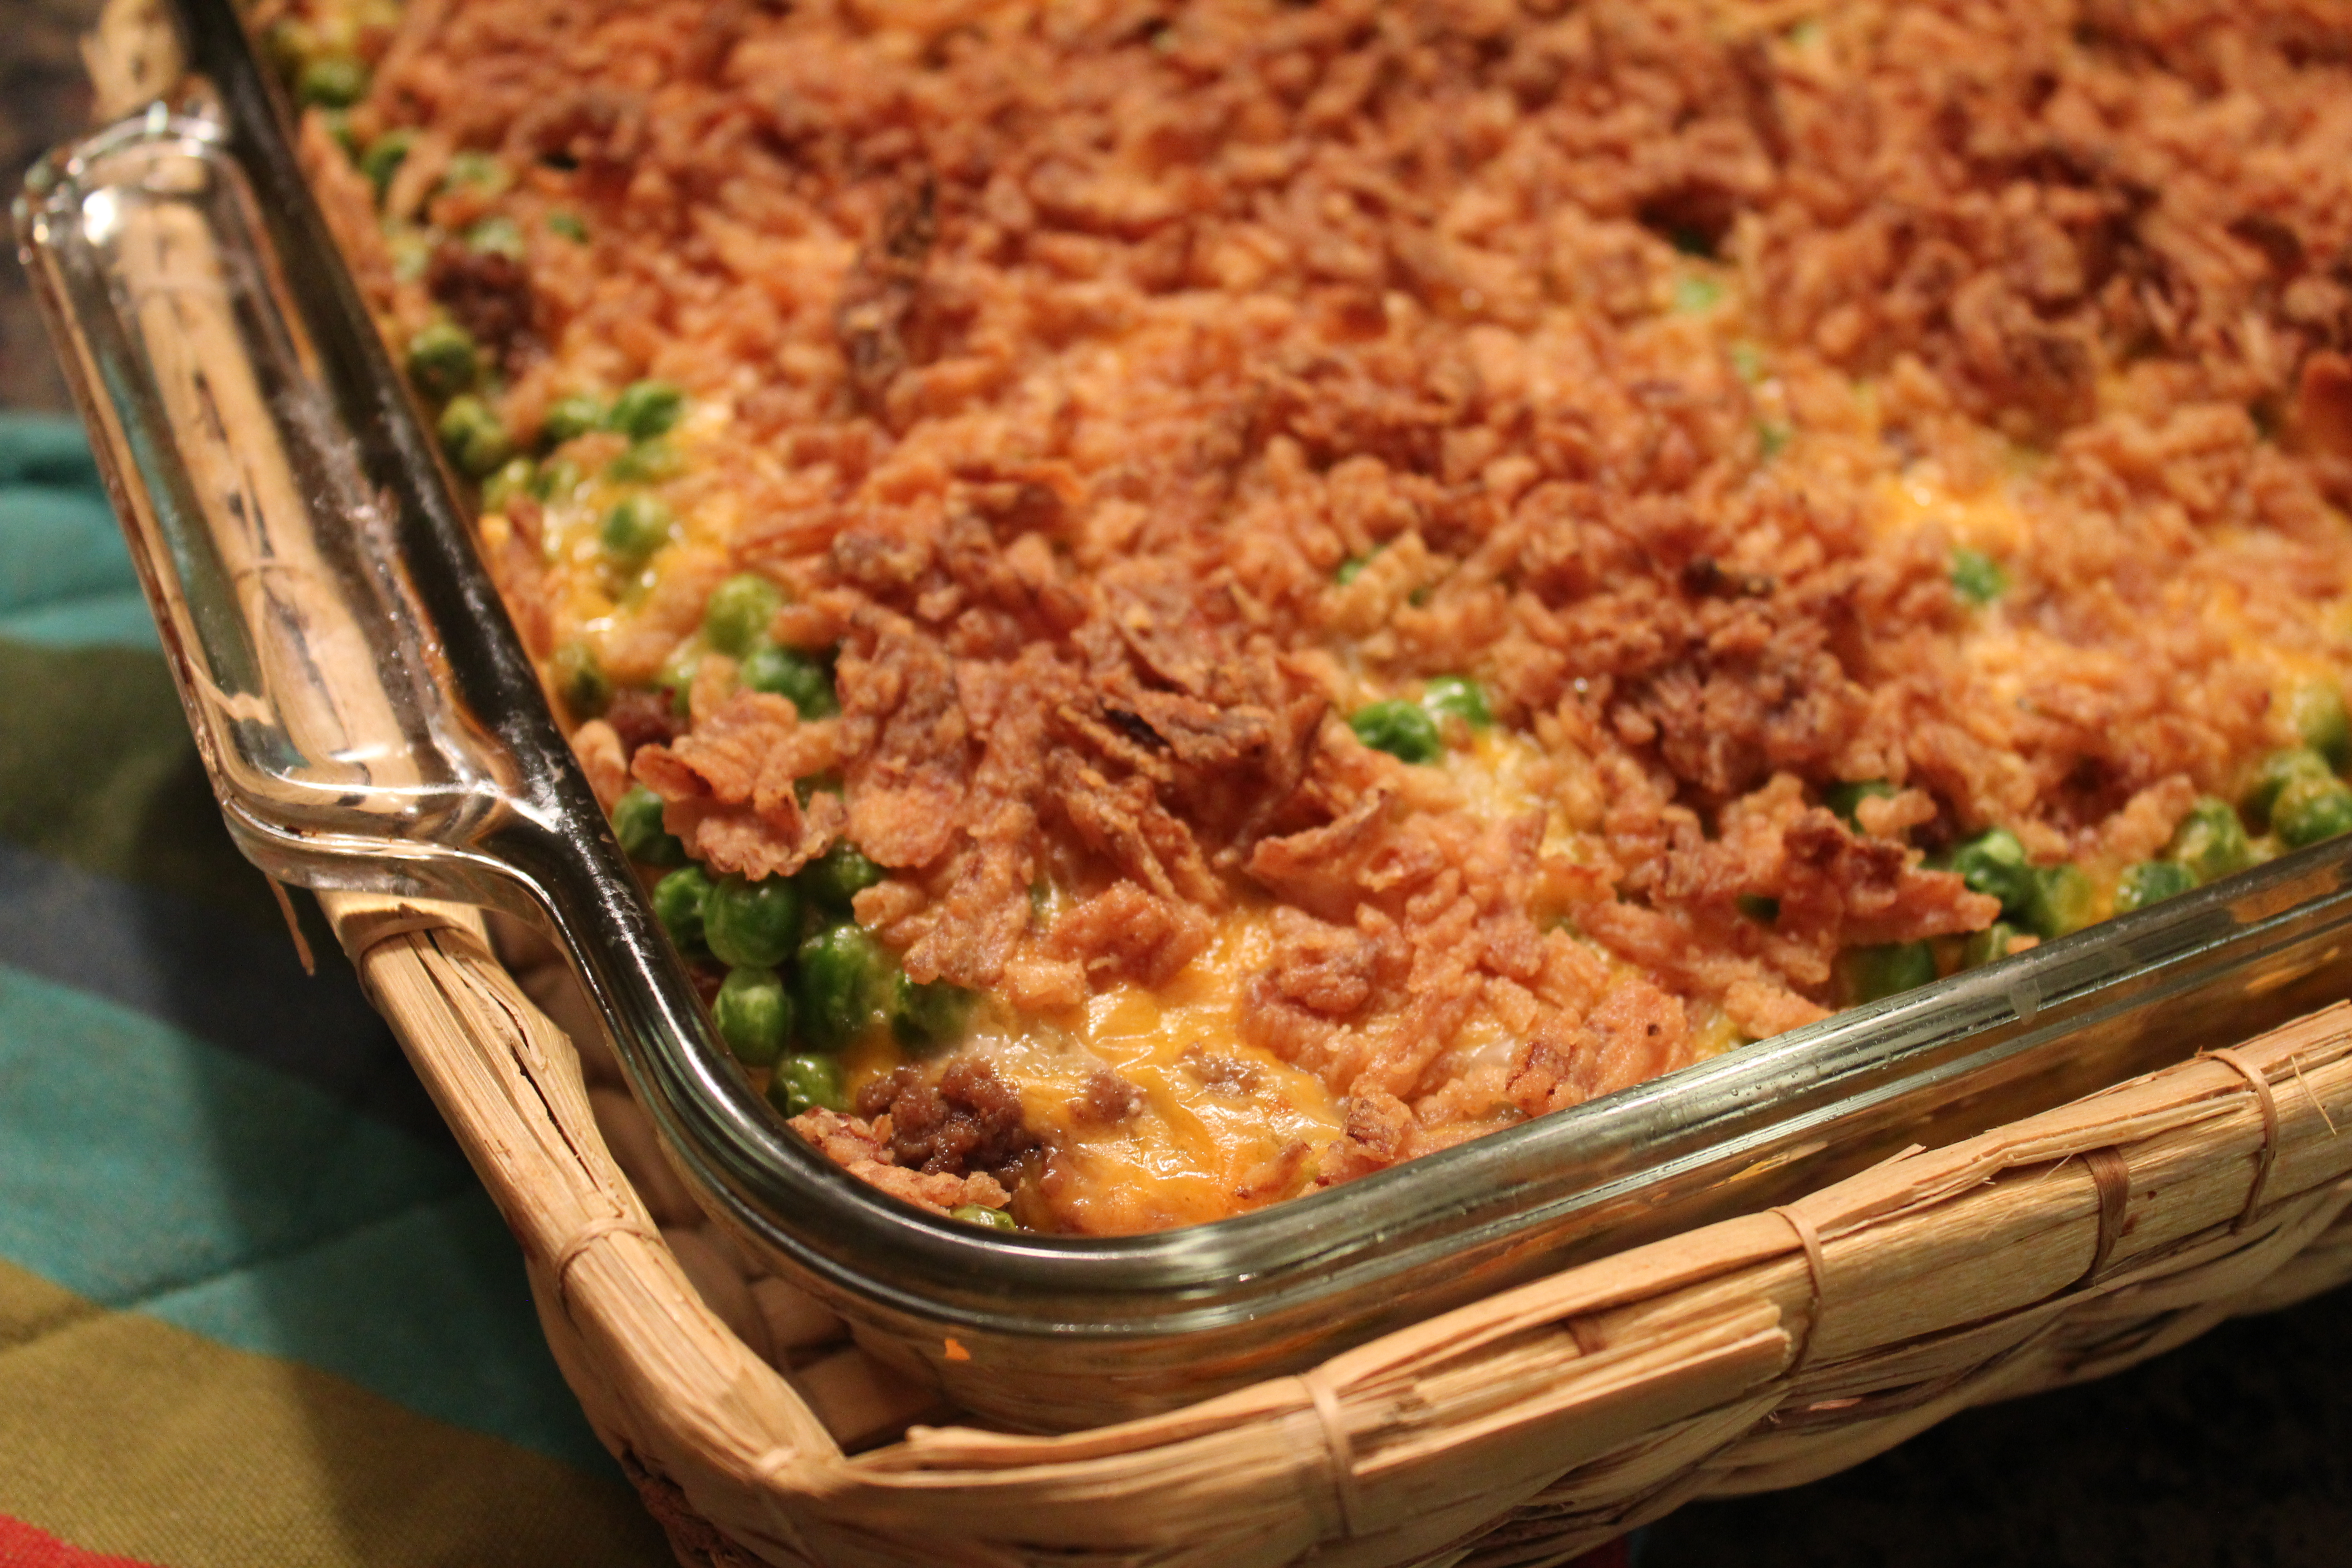 Ground Beef Tater Tot Casserole Recipes